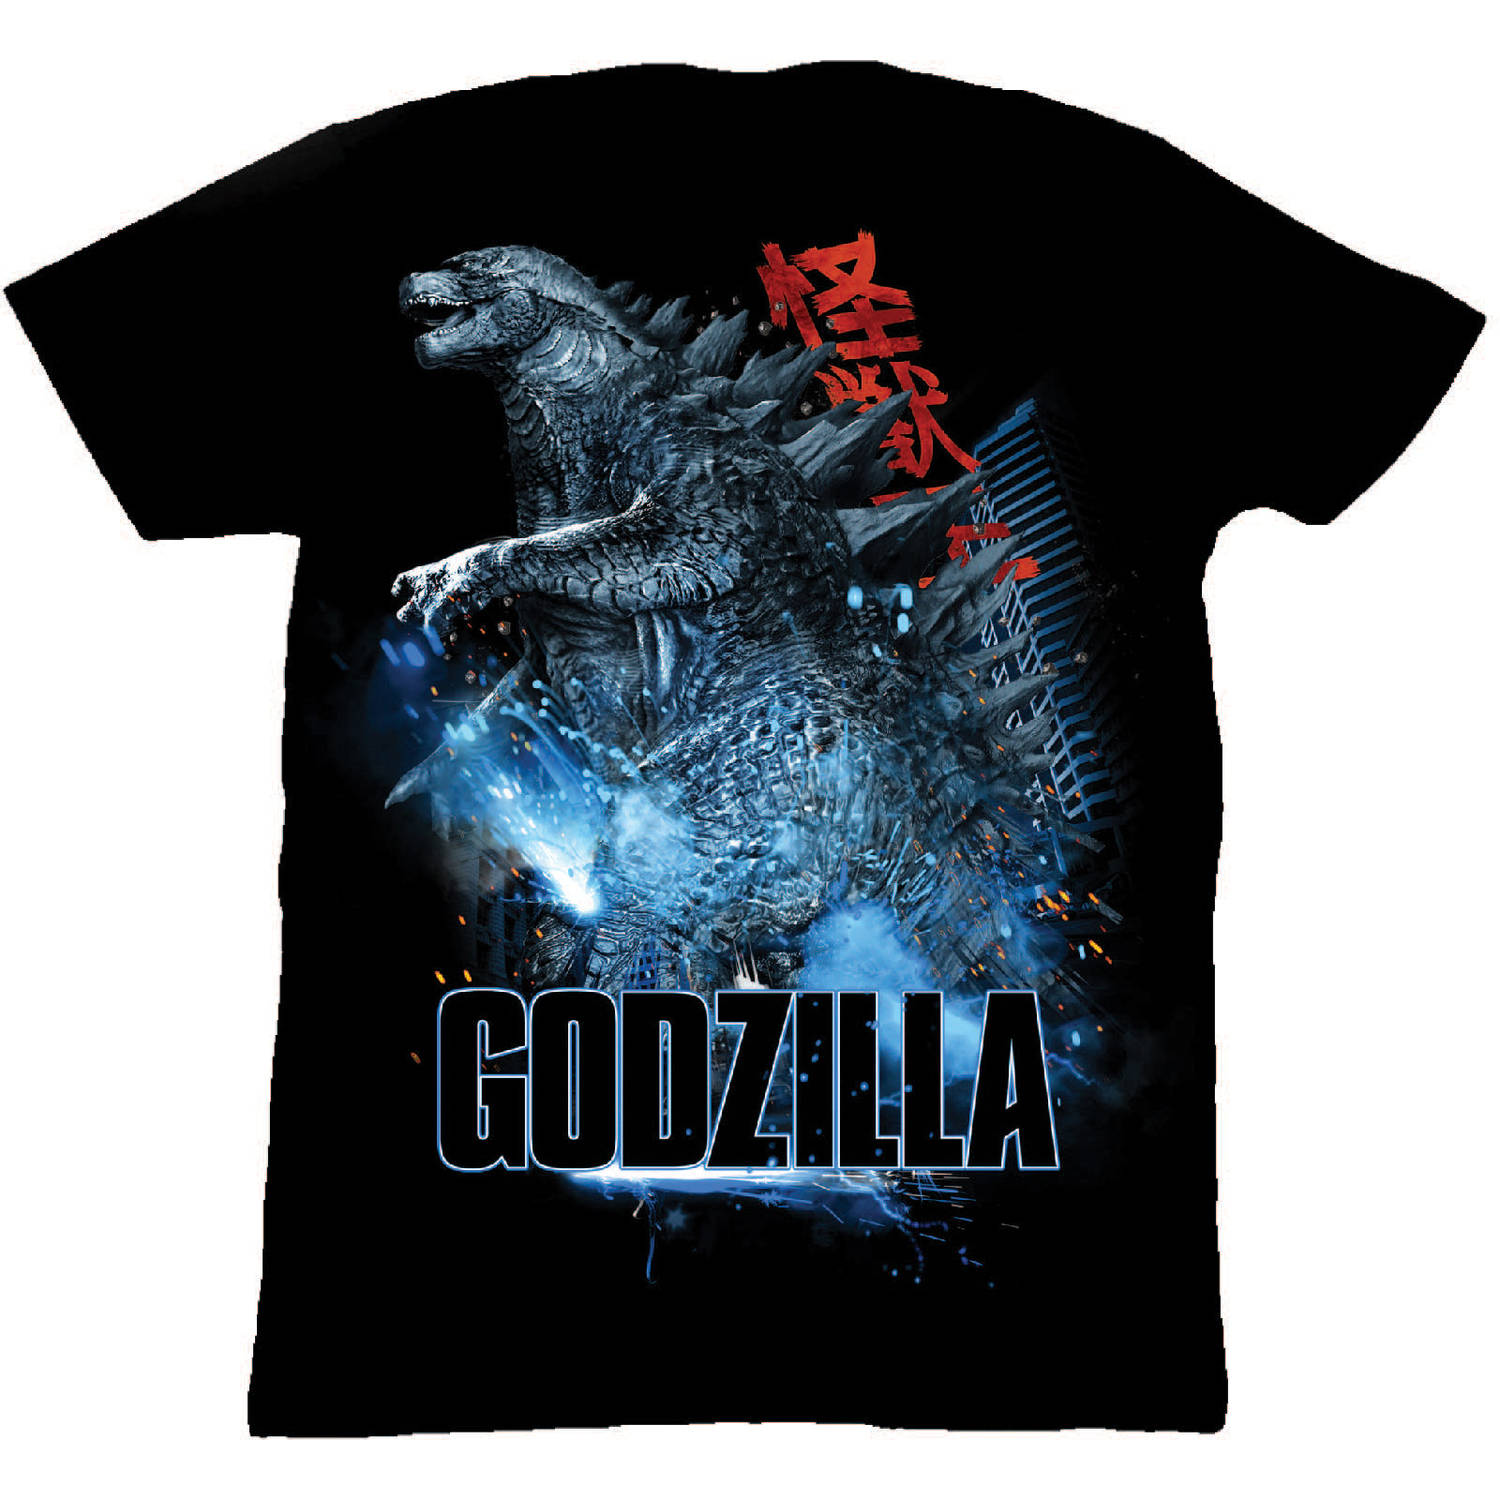 Big Men's Godzilla Graphic Tee